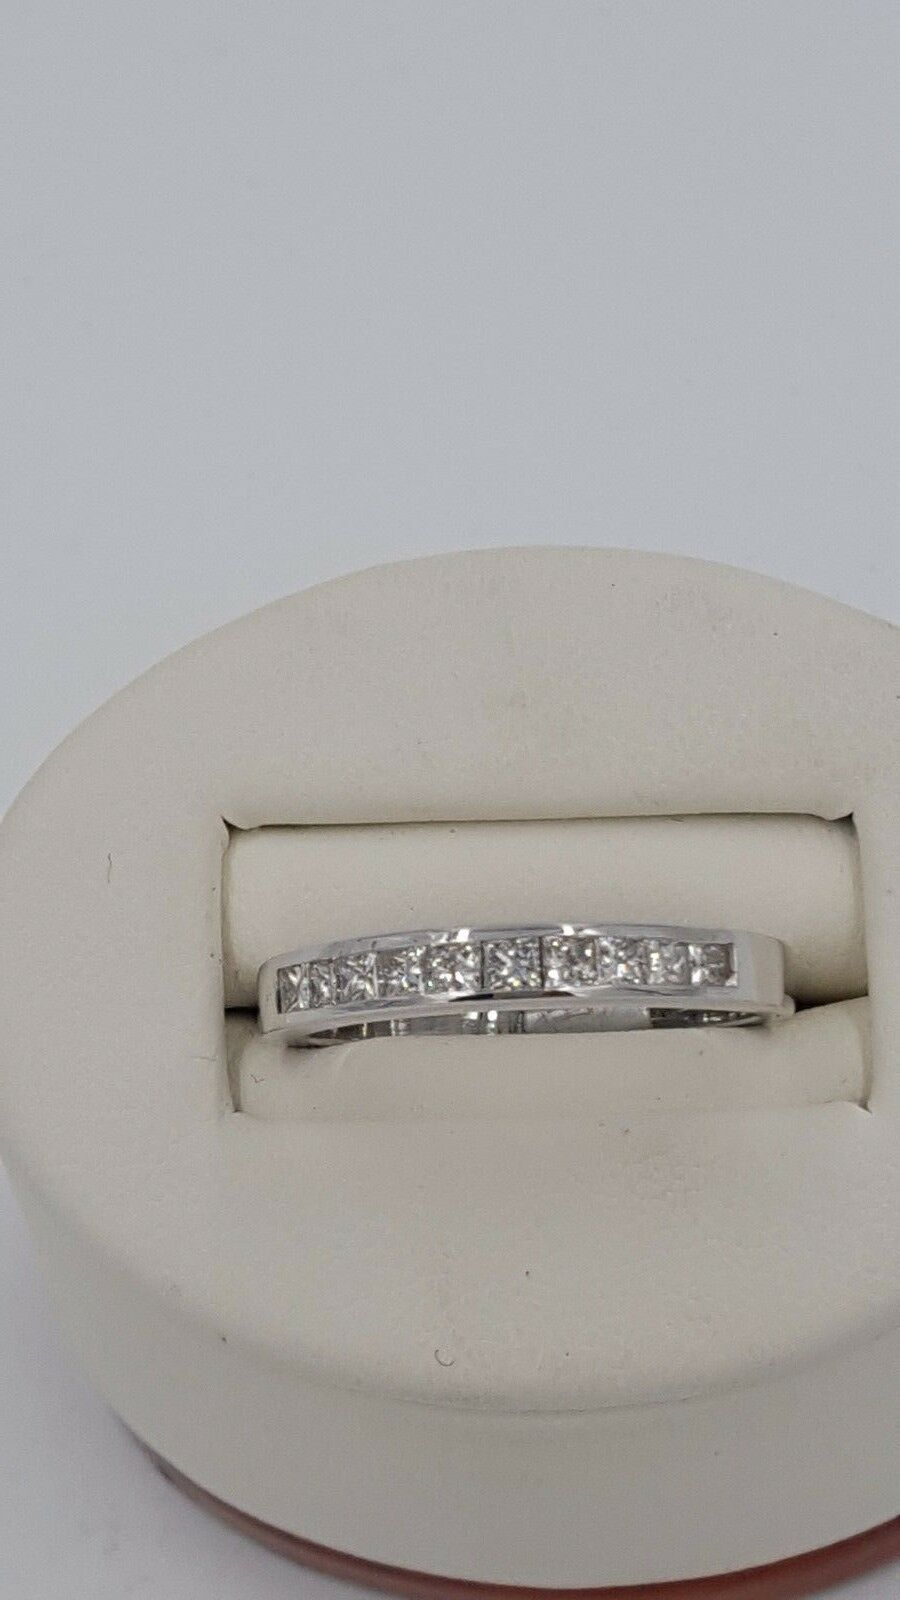 0.50 CARAT PRINCESS CUT SET DIAMOND RING H COLOR SI1 CLARITY 14KT WHITE gold